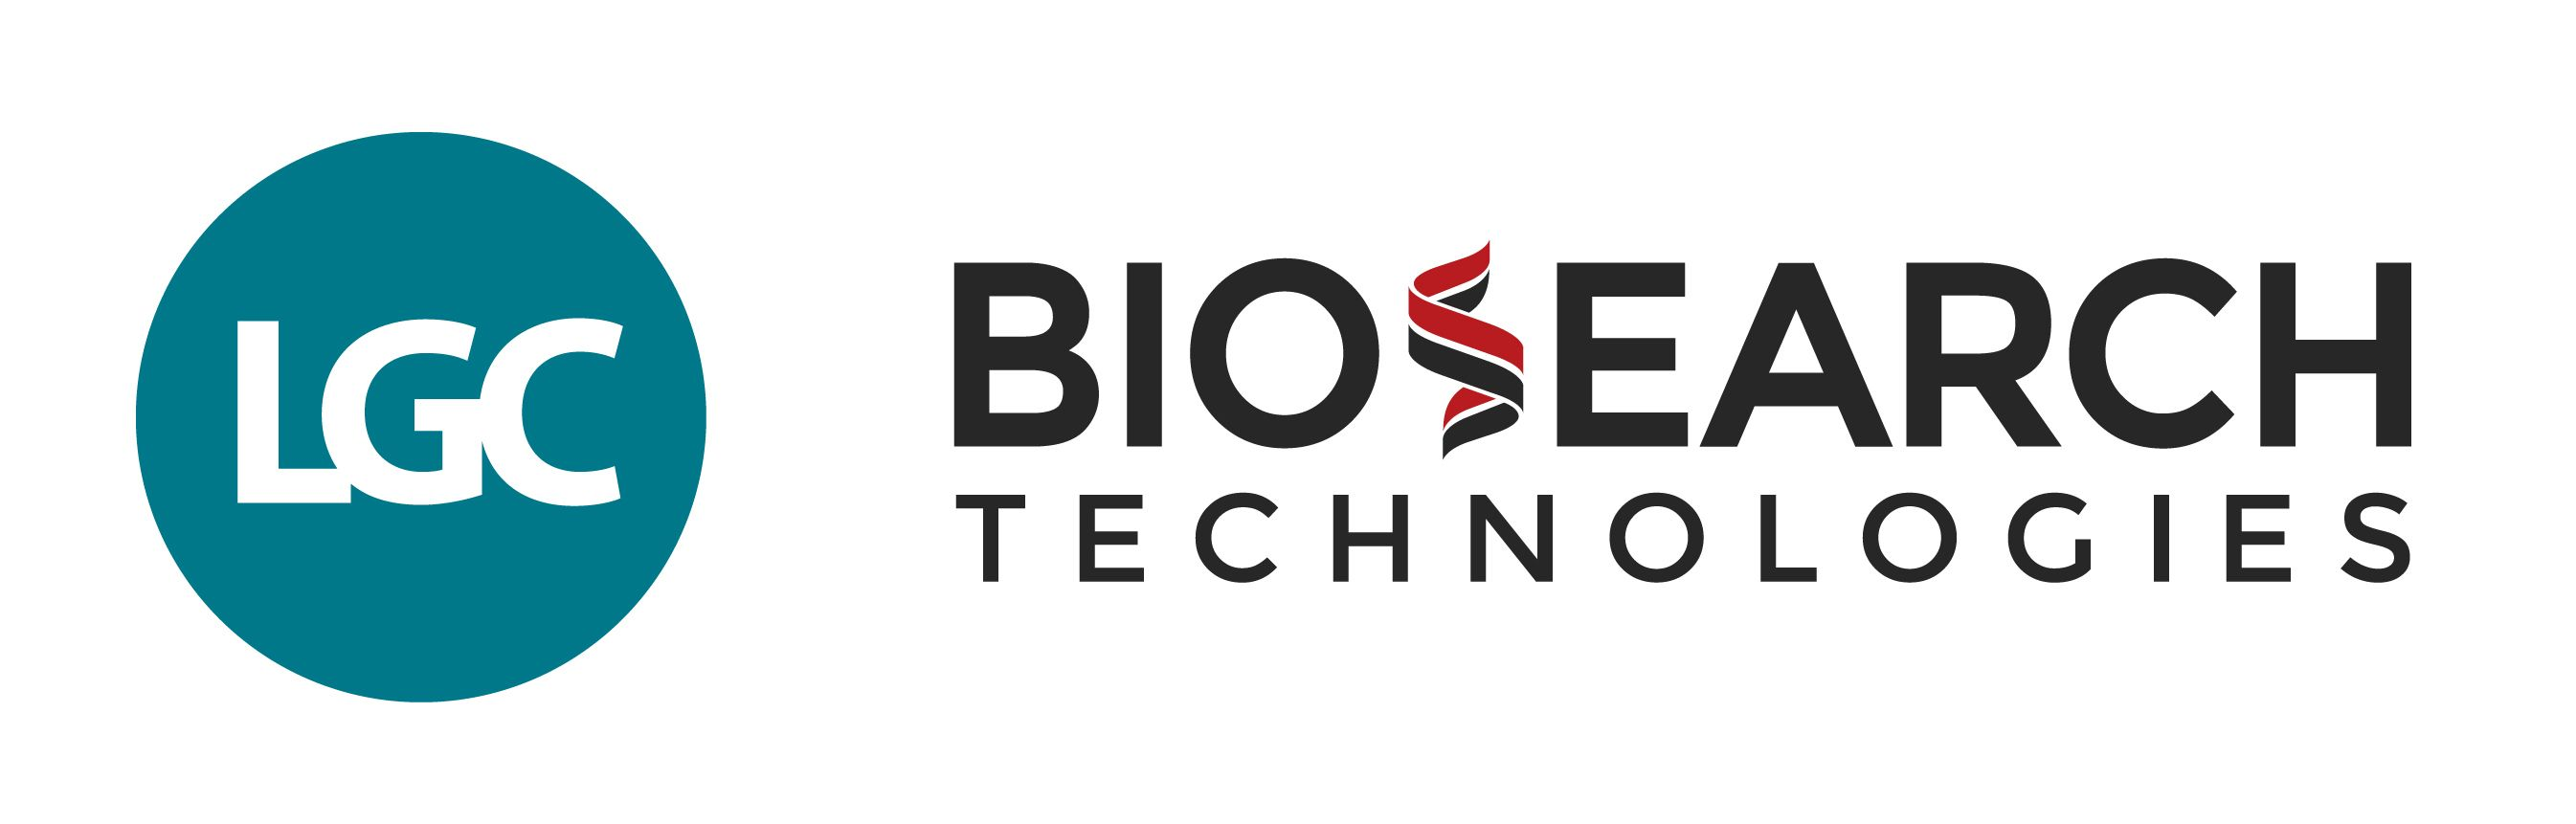 LGC_Biosearch Logo